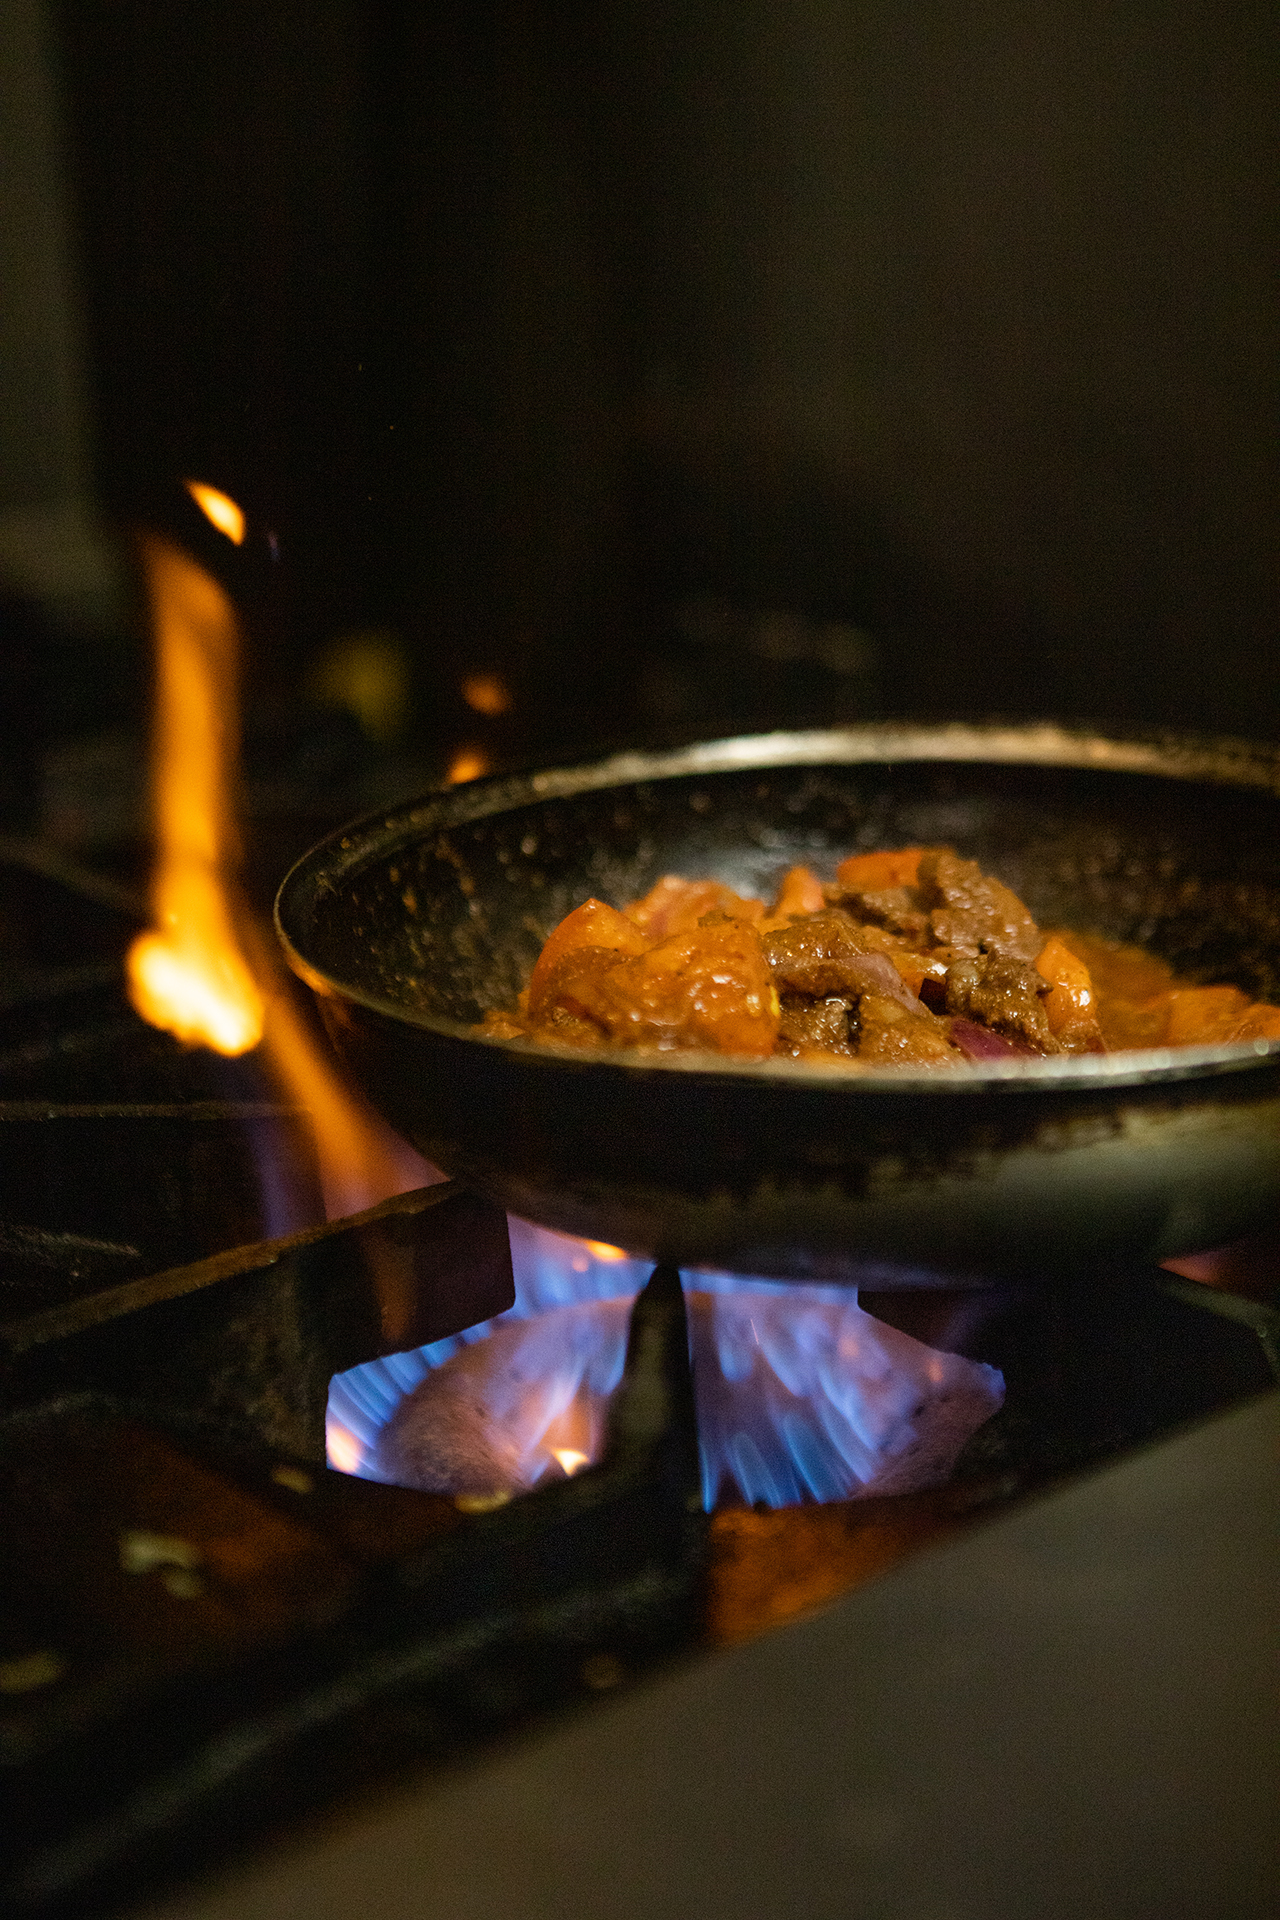 In the hummus labs kitchen beef shawarma is pictured up close in a saute pan while cooked over the stove top. The flame underneath is blue and purple in color and there are red flames coming up around the back of the sauté pan.